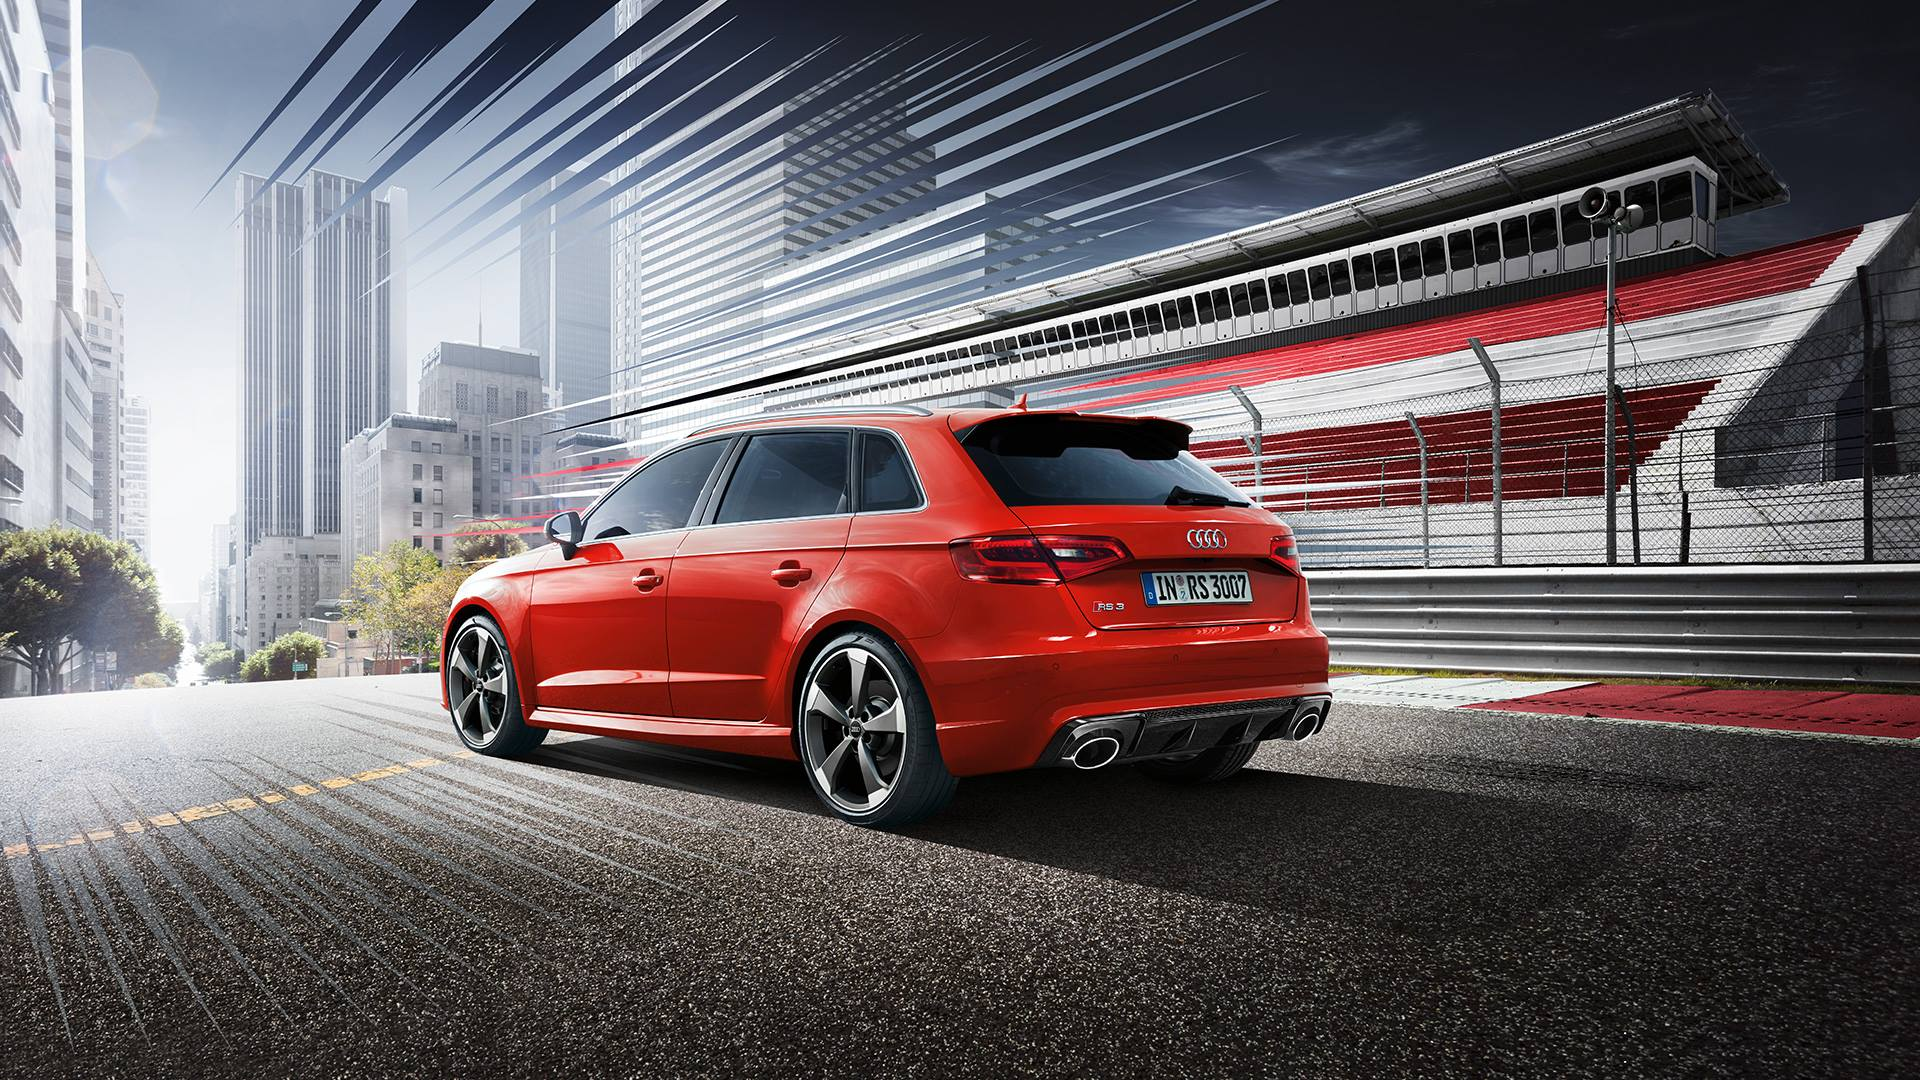 362 Bhp Audi Rs3 Sportback Priced At 163 40 000 In Britain